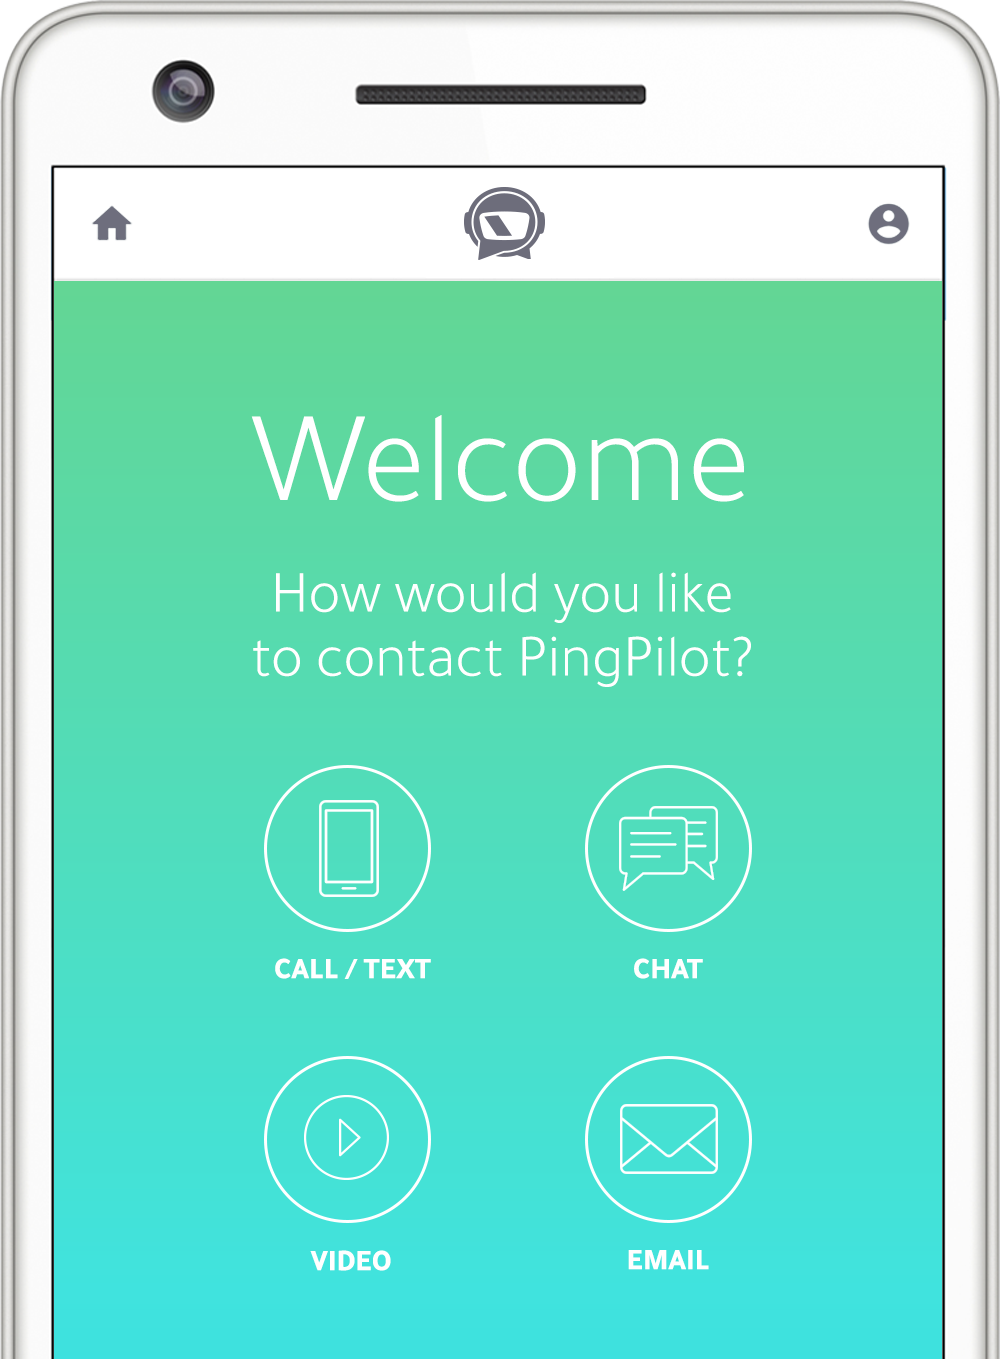 Signal Contact Engagement, Call, Text, Chat, Video Call, and Email.